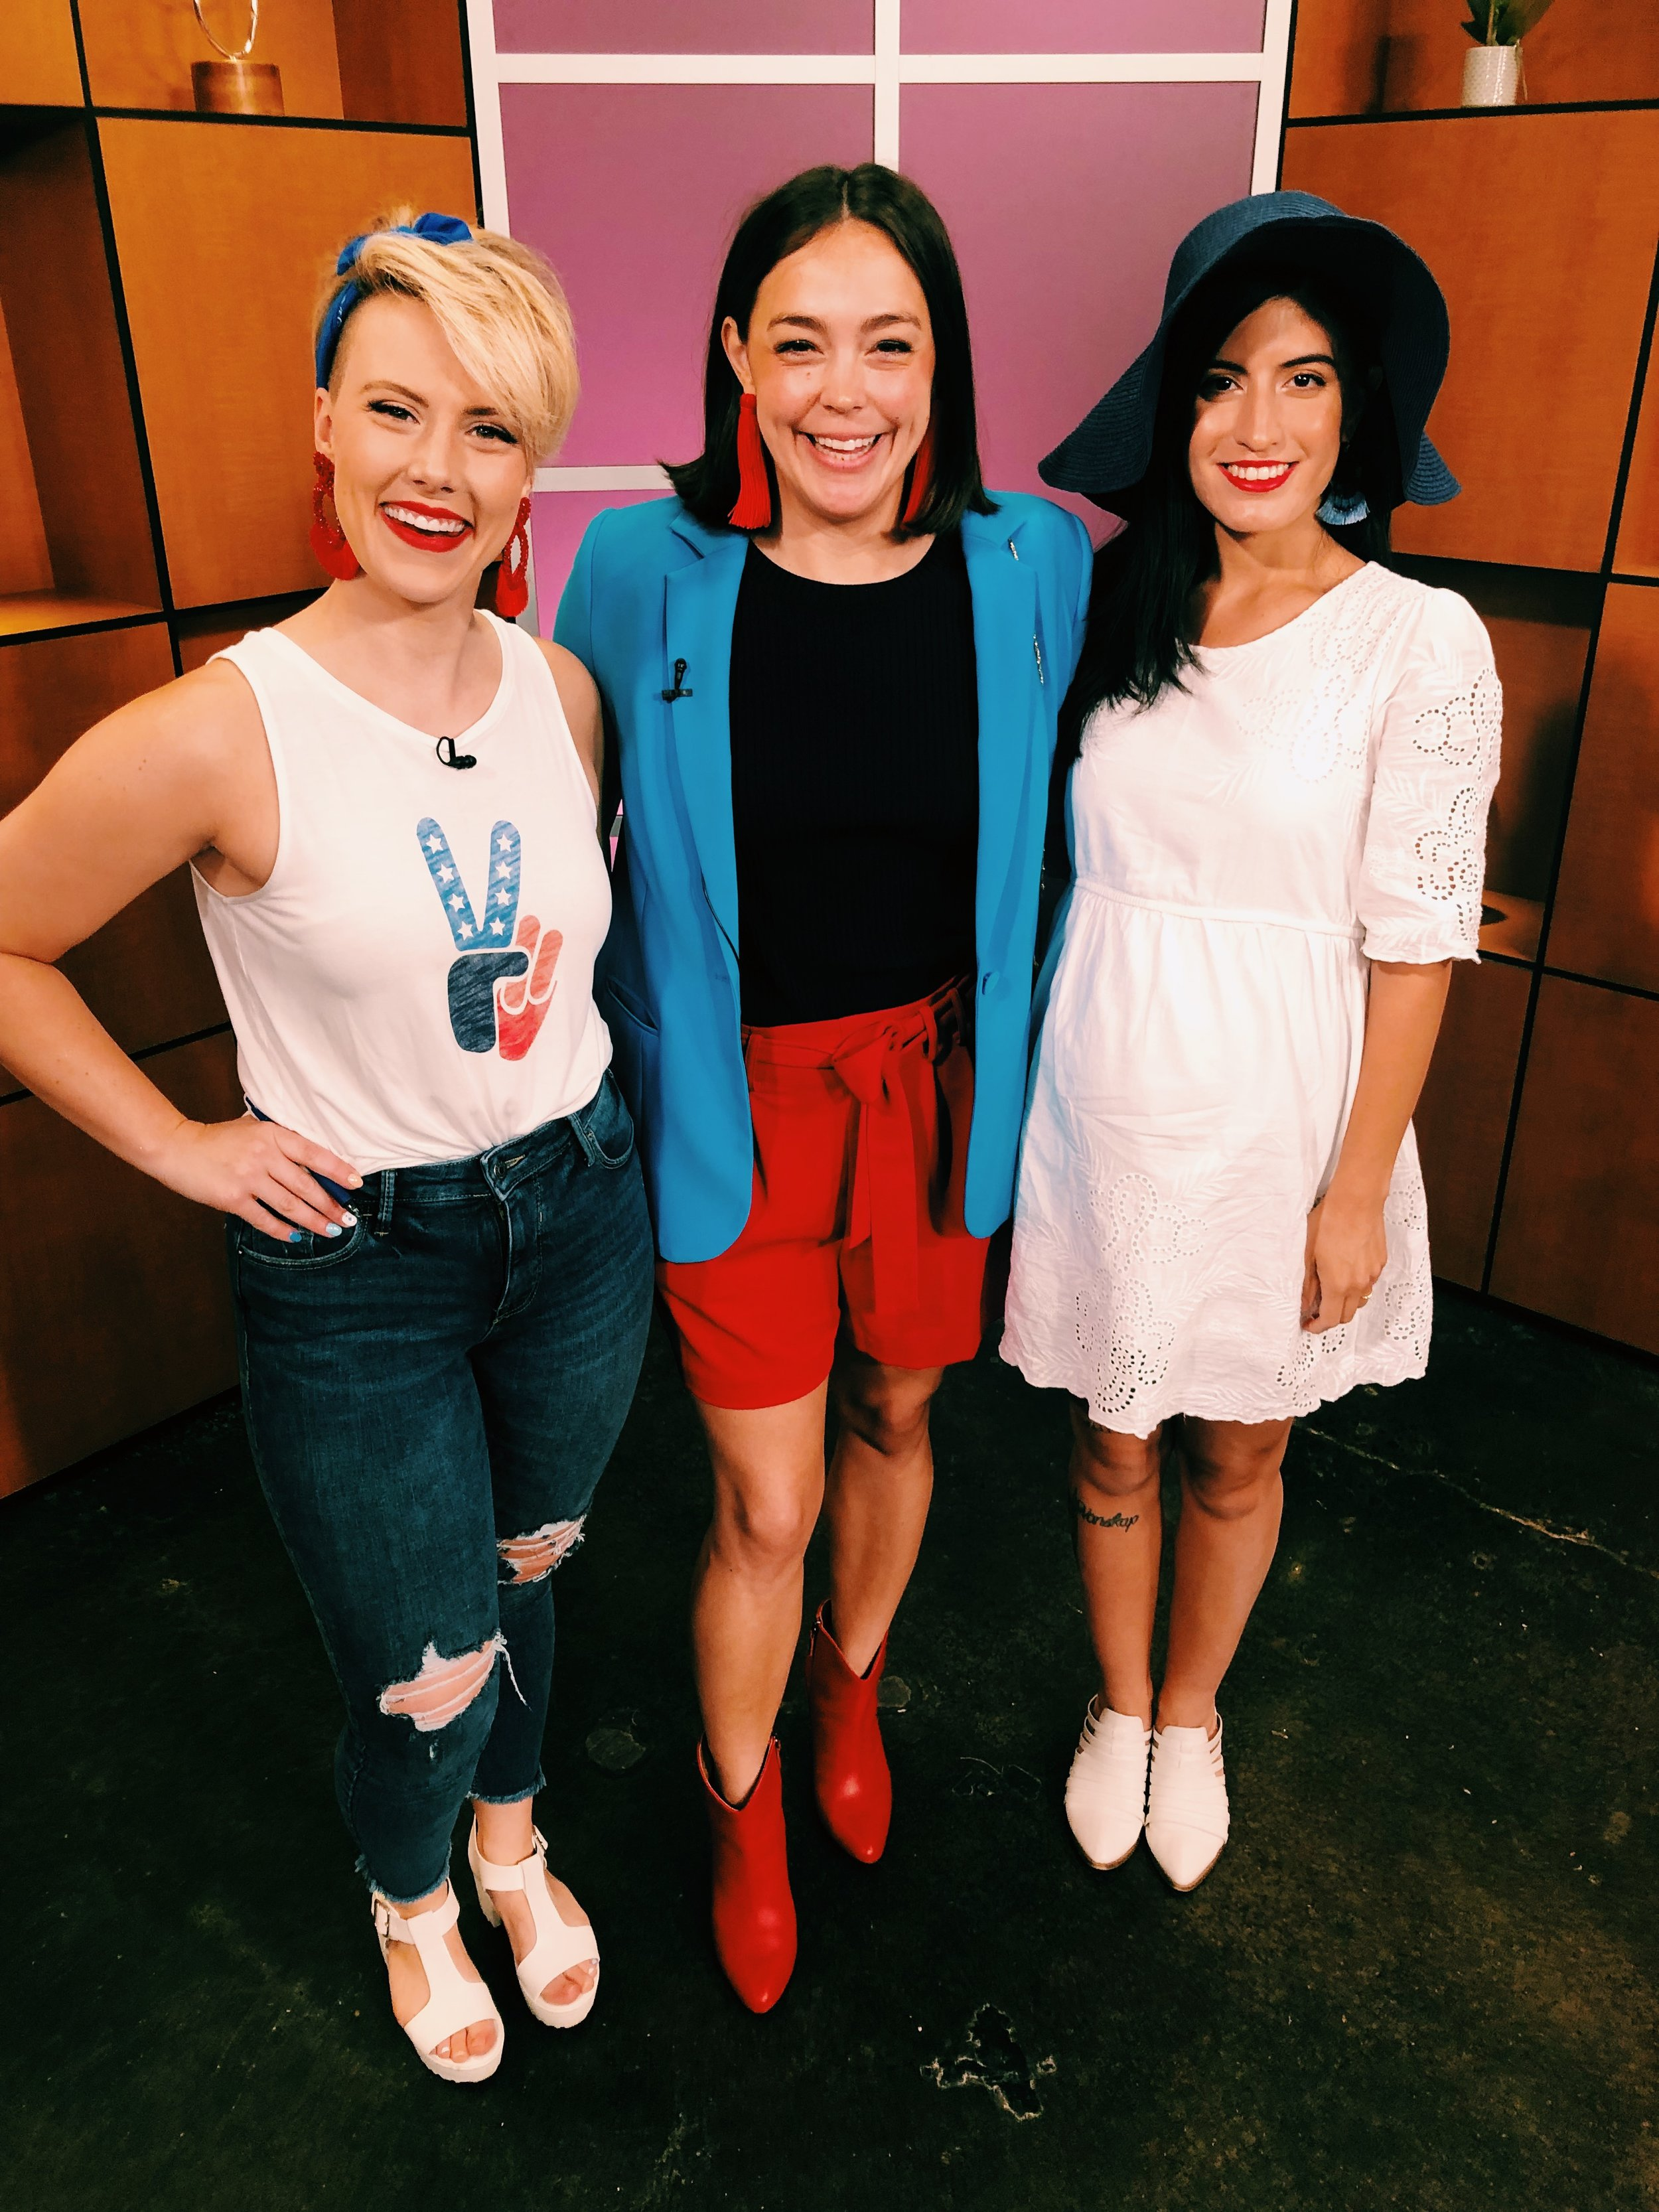 Raquel Greer Gordian visits Studio 512 to chat all about how to dress for the summer's biggest holiday: July 4th! Whether you're heading to the pool, a barbecue, or a dressy casual dinner, Raquel gives you easy styling tips to create a red, white, and blue look you'll love for July 4th 2019.